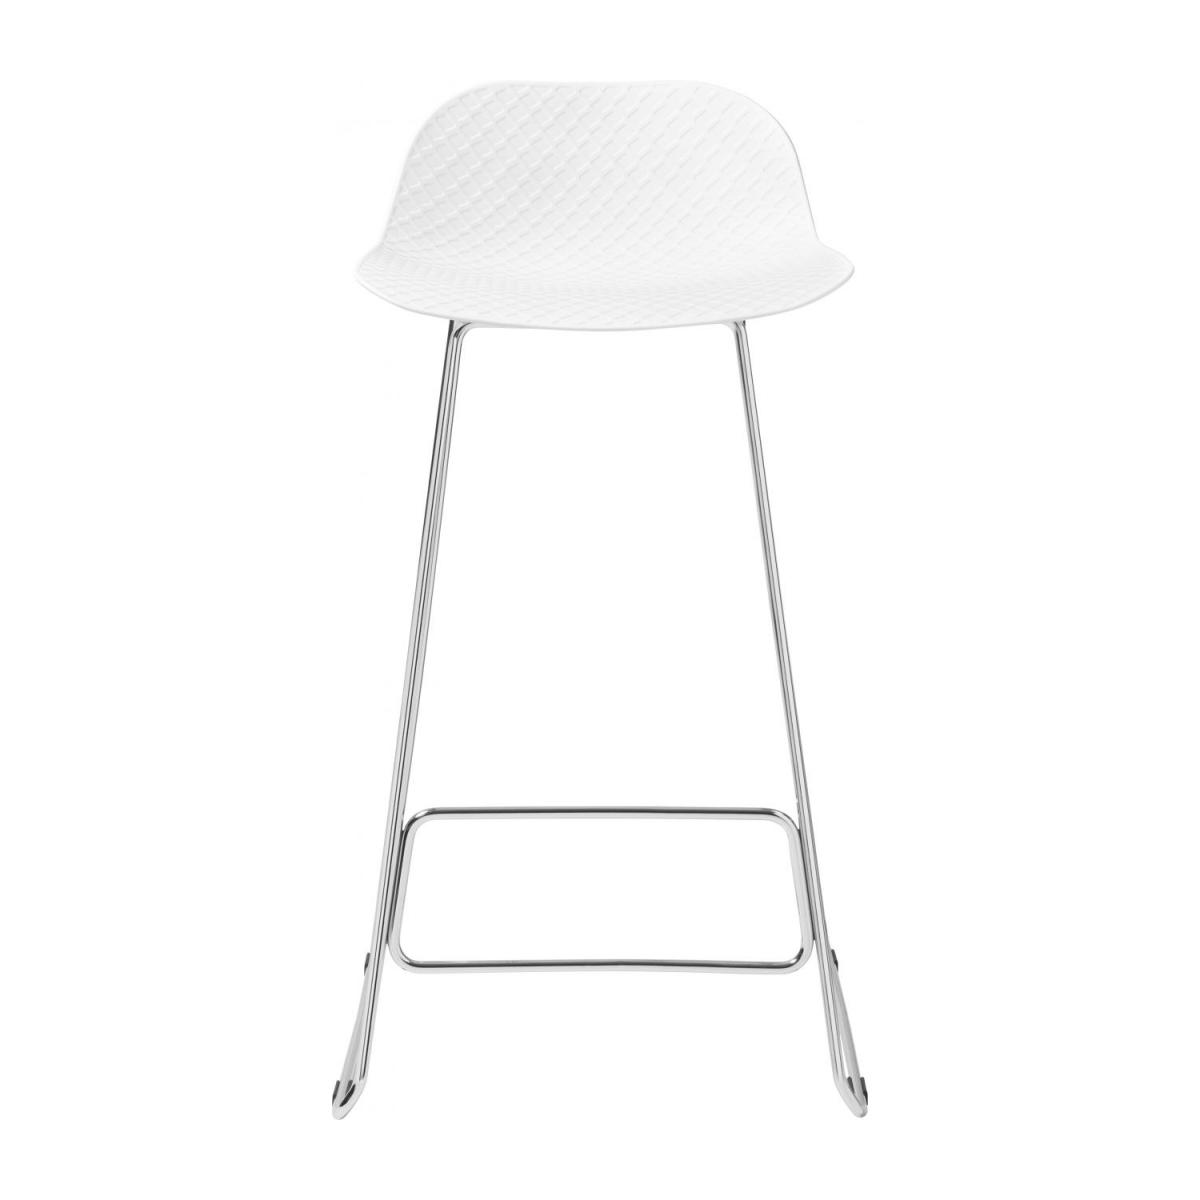 White high stool in polypropylene and lacquered steel legs n°2